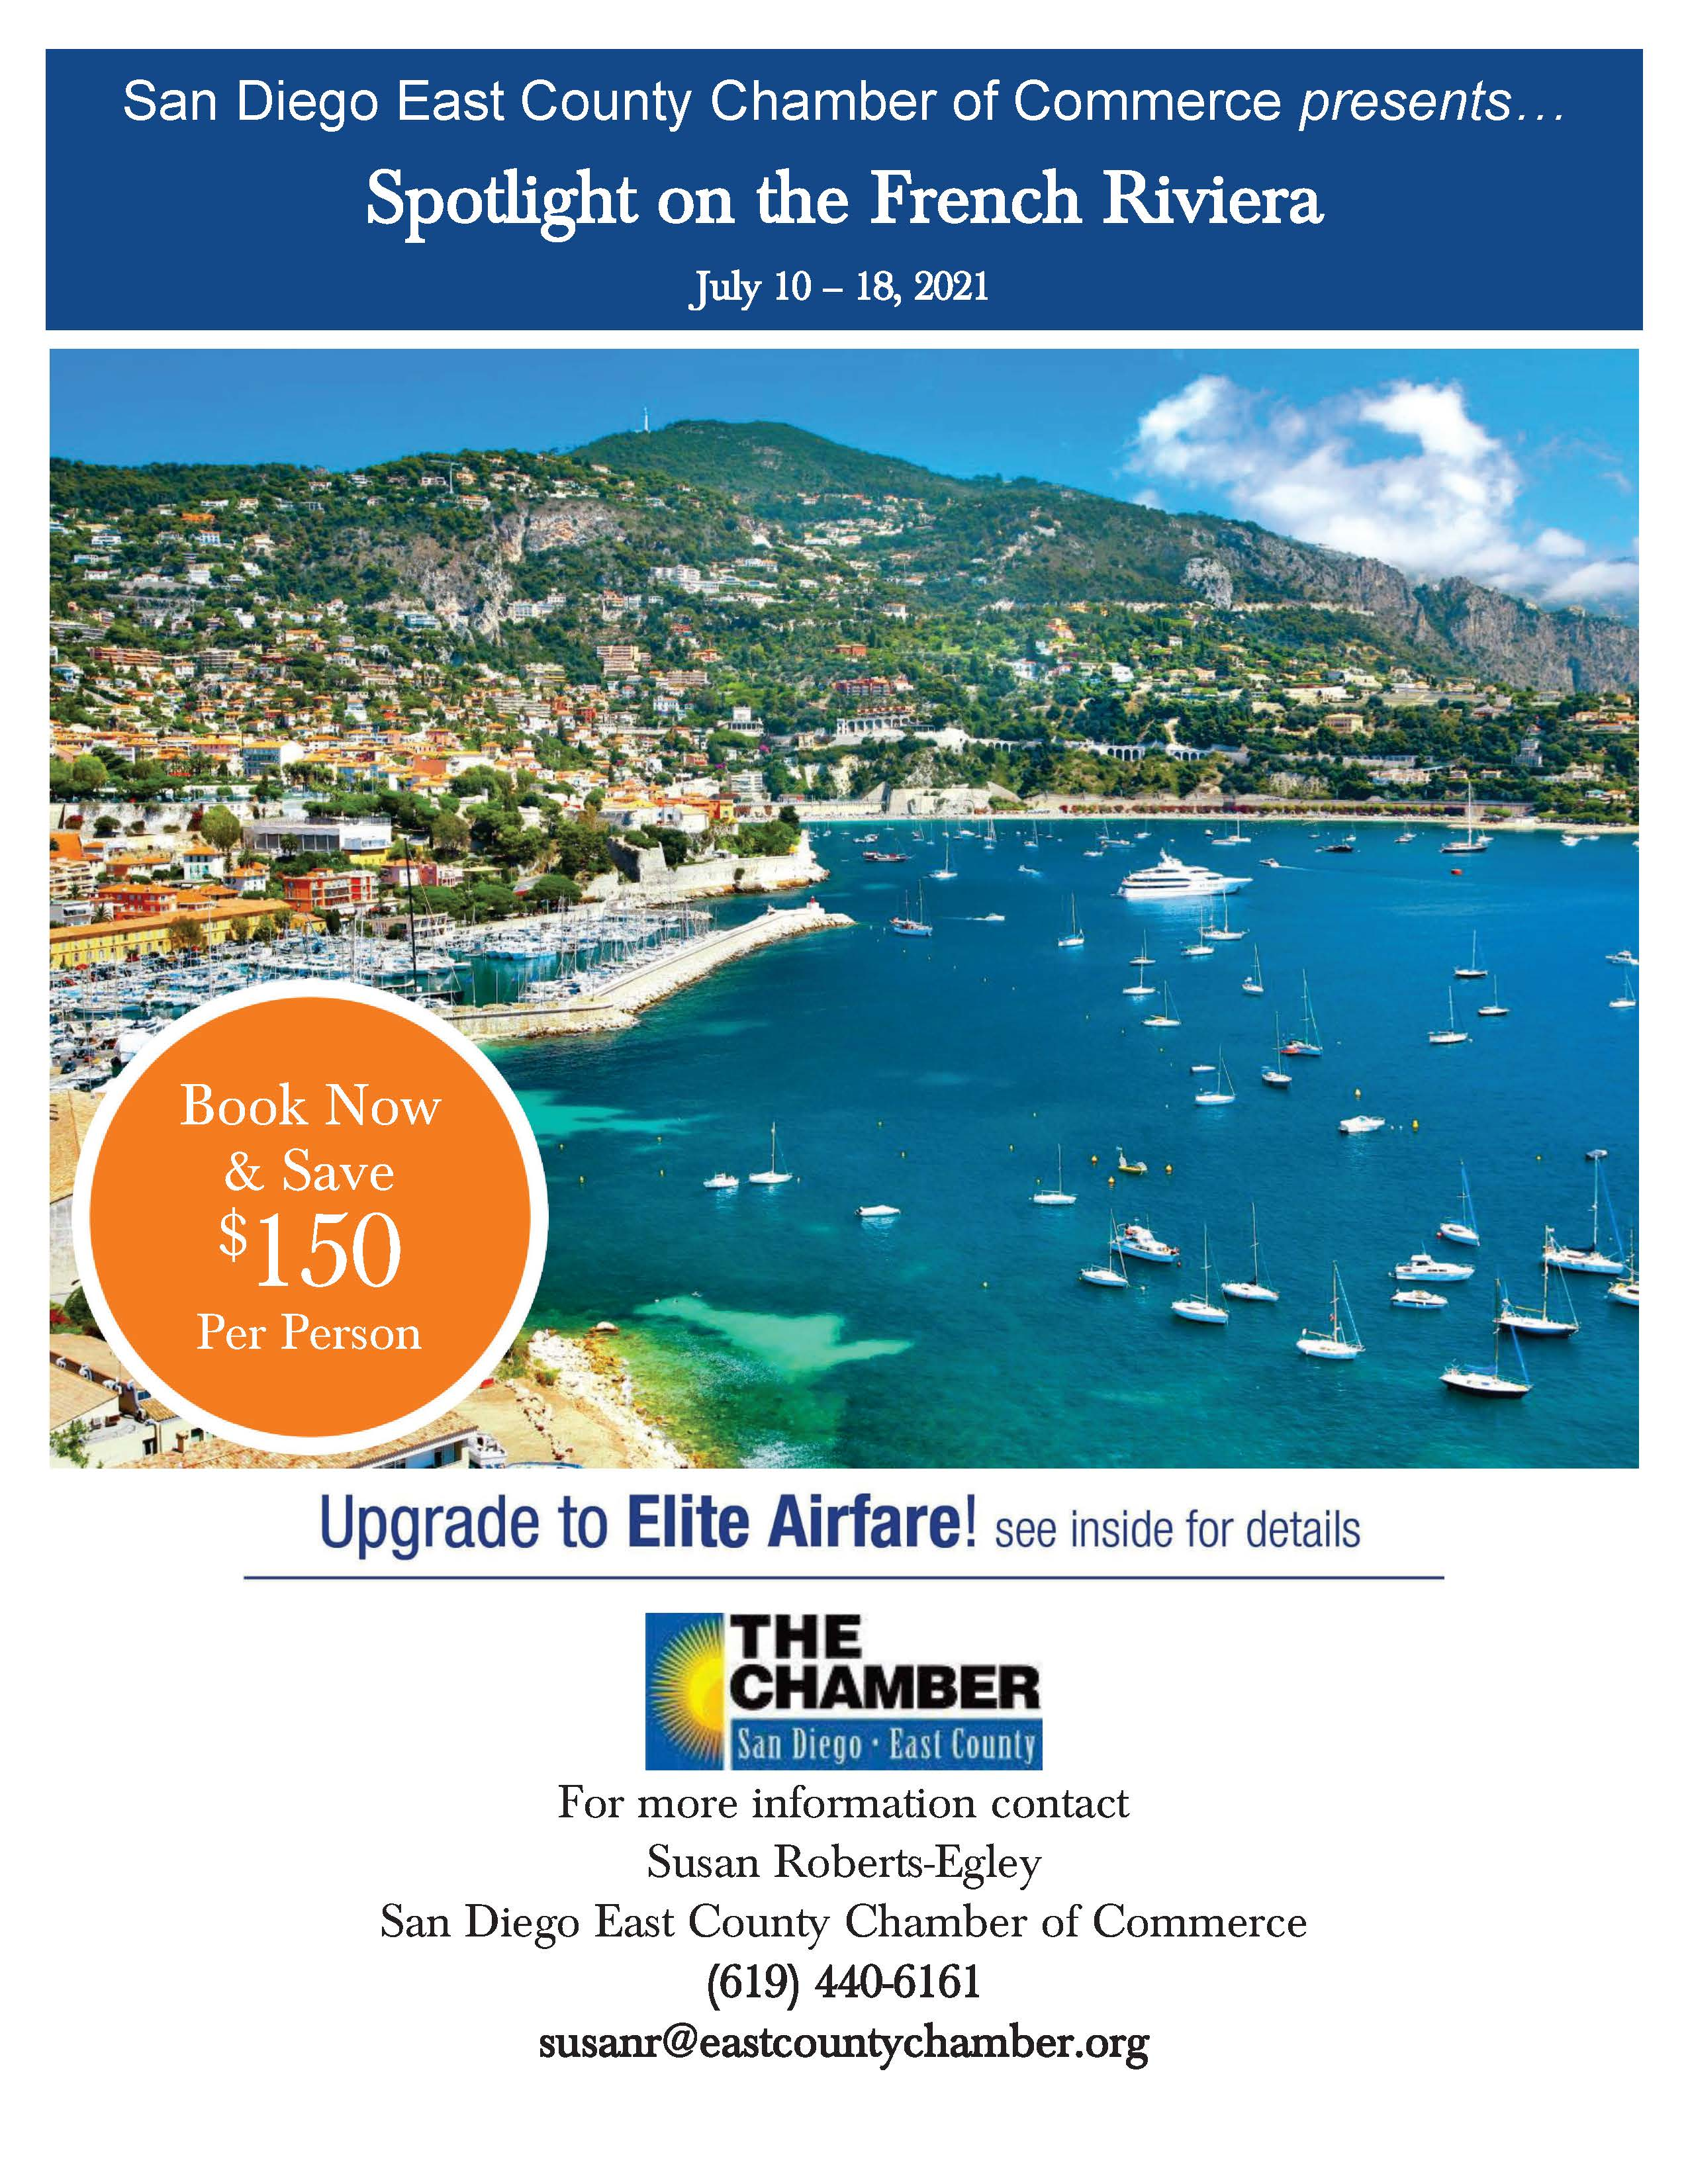 French Riviera ET 2021 Brochure_cover